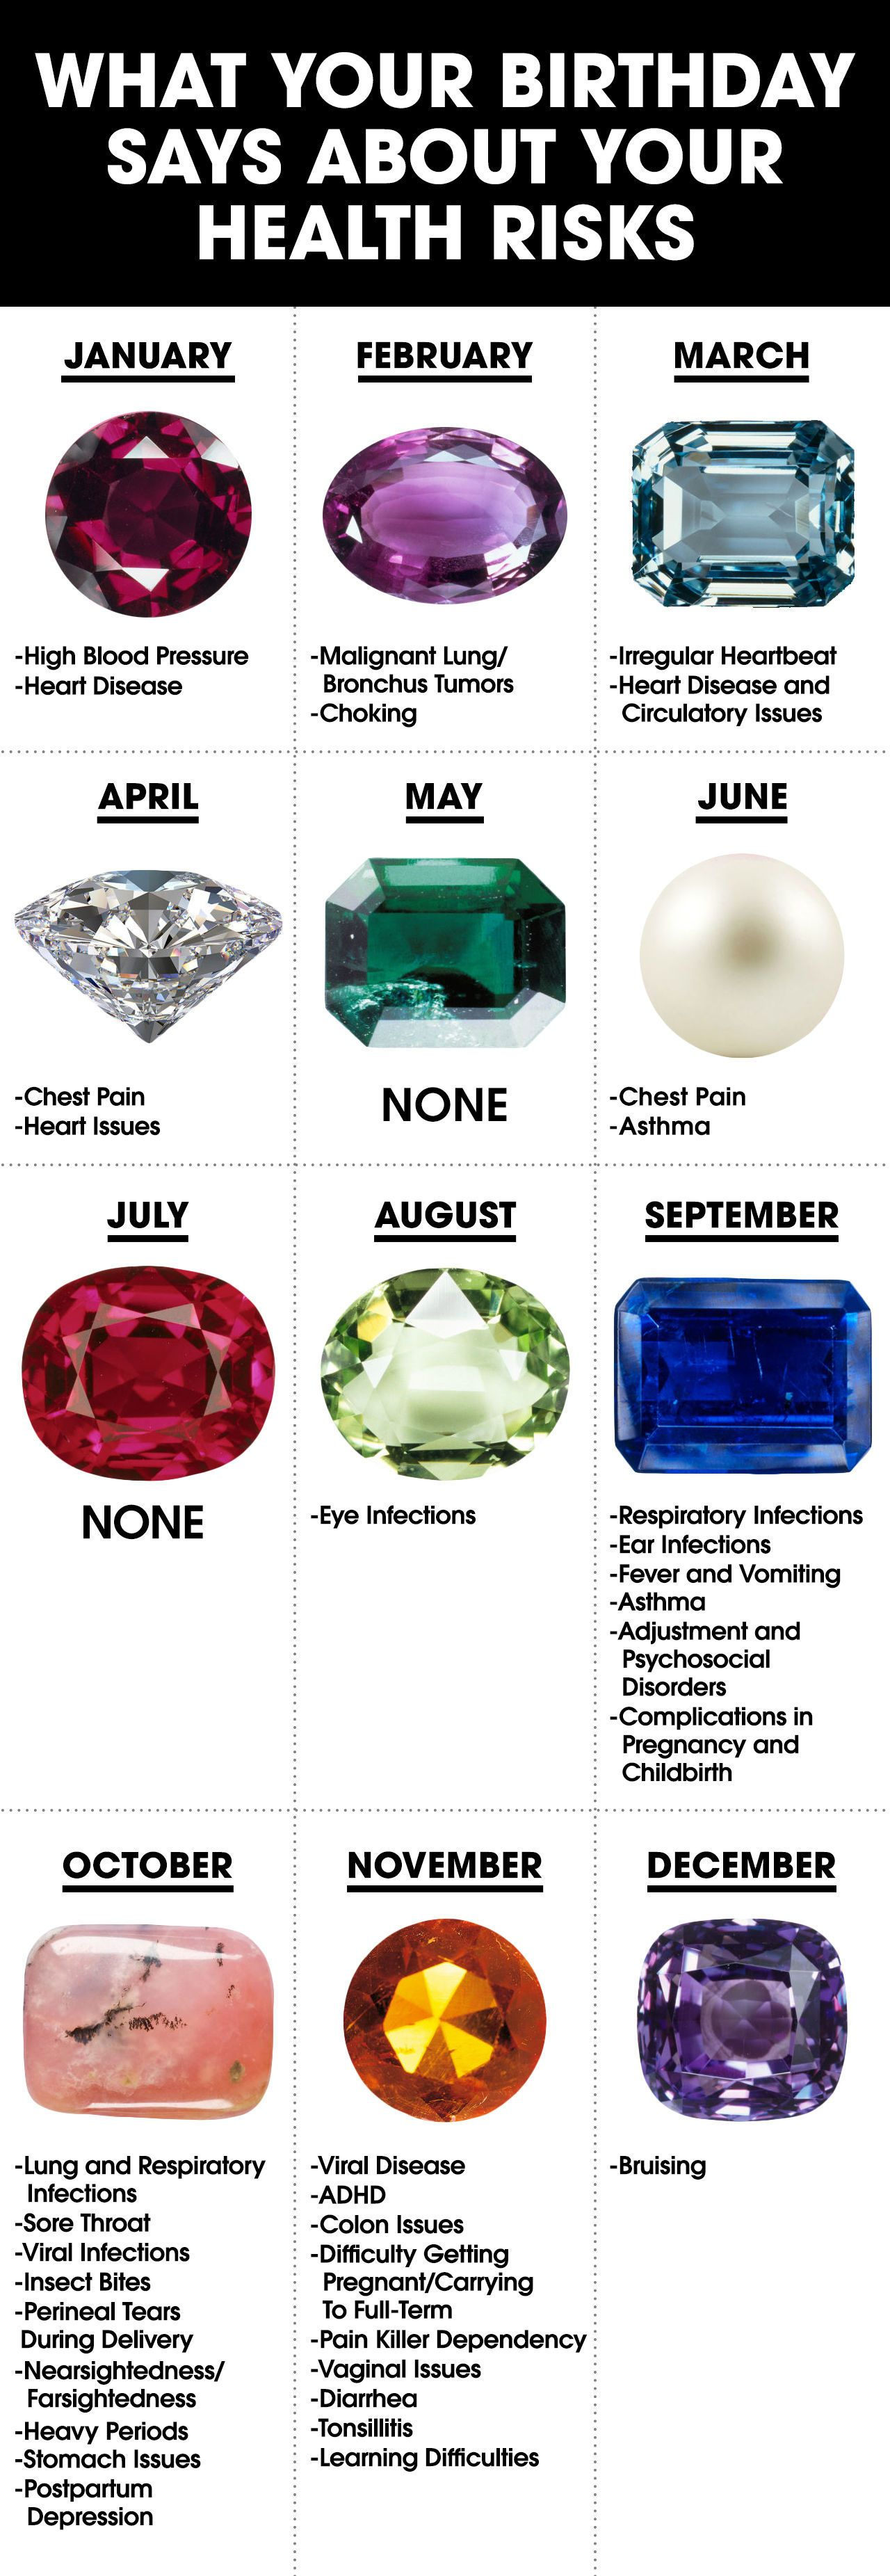 Obsessed over stones birth stone chart choose stones of your birth obsessed over stones birth stone chart choose stones of your birth mont jwellery pinterest birth chart and stone nvjuhfo Image collections